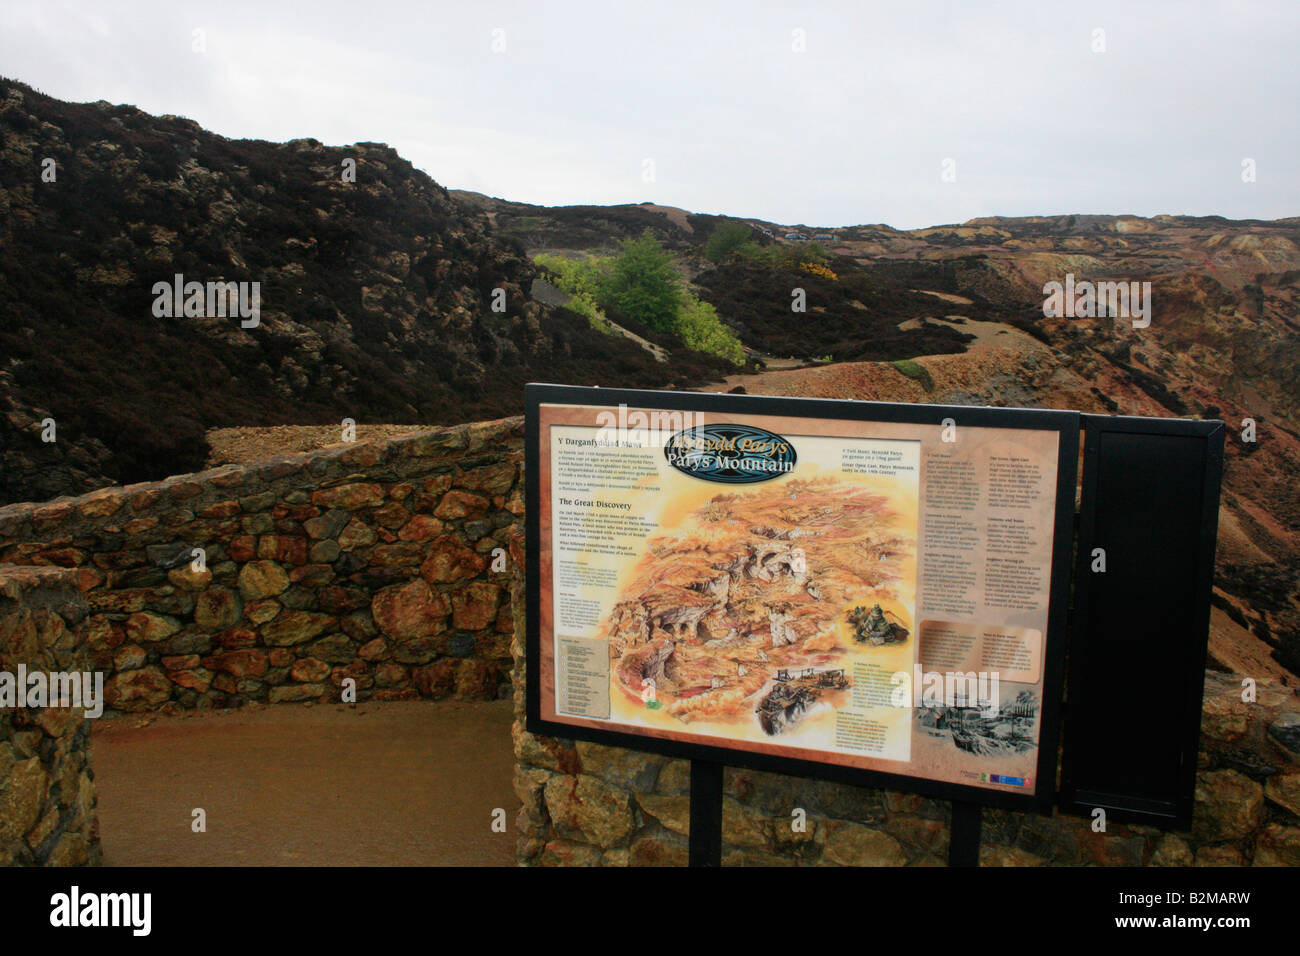 Panel explaining the copper mining history of Parys Mountain in the island of Anglesey - Stock Image